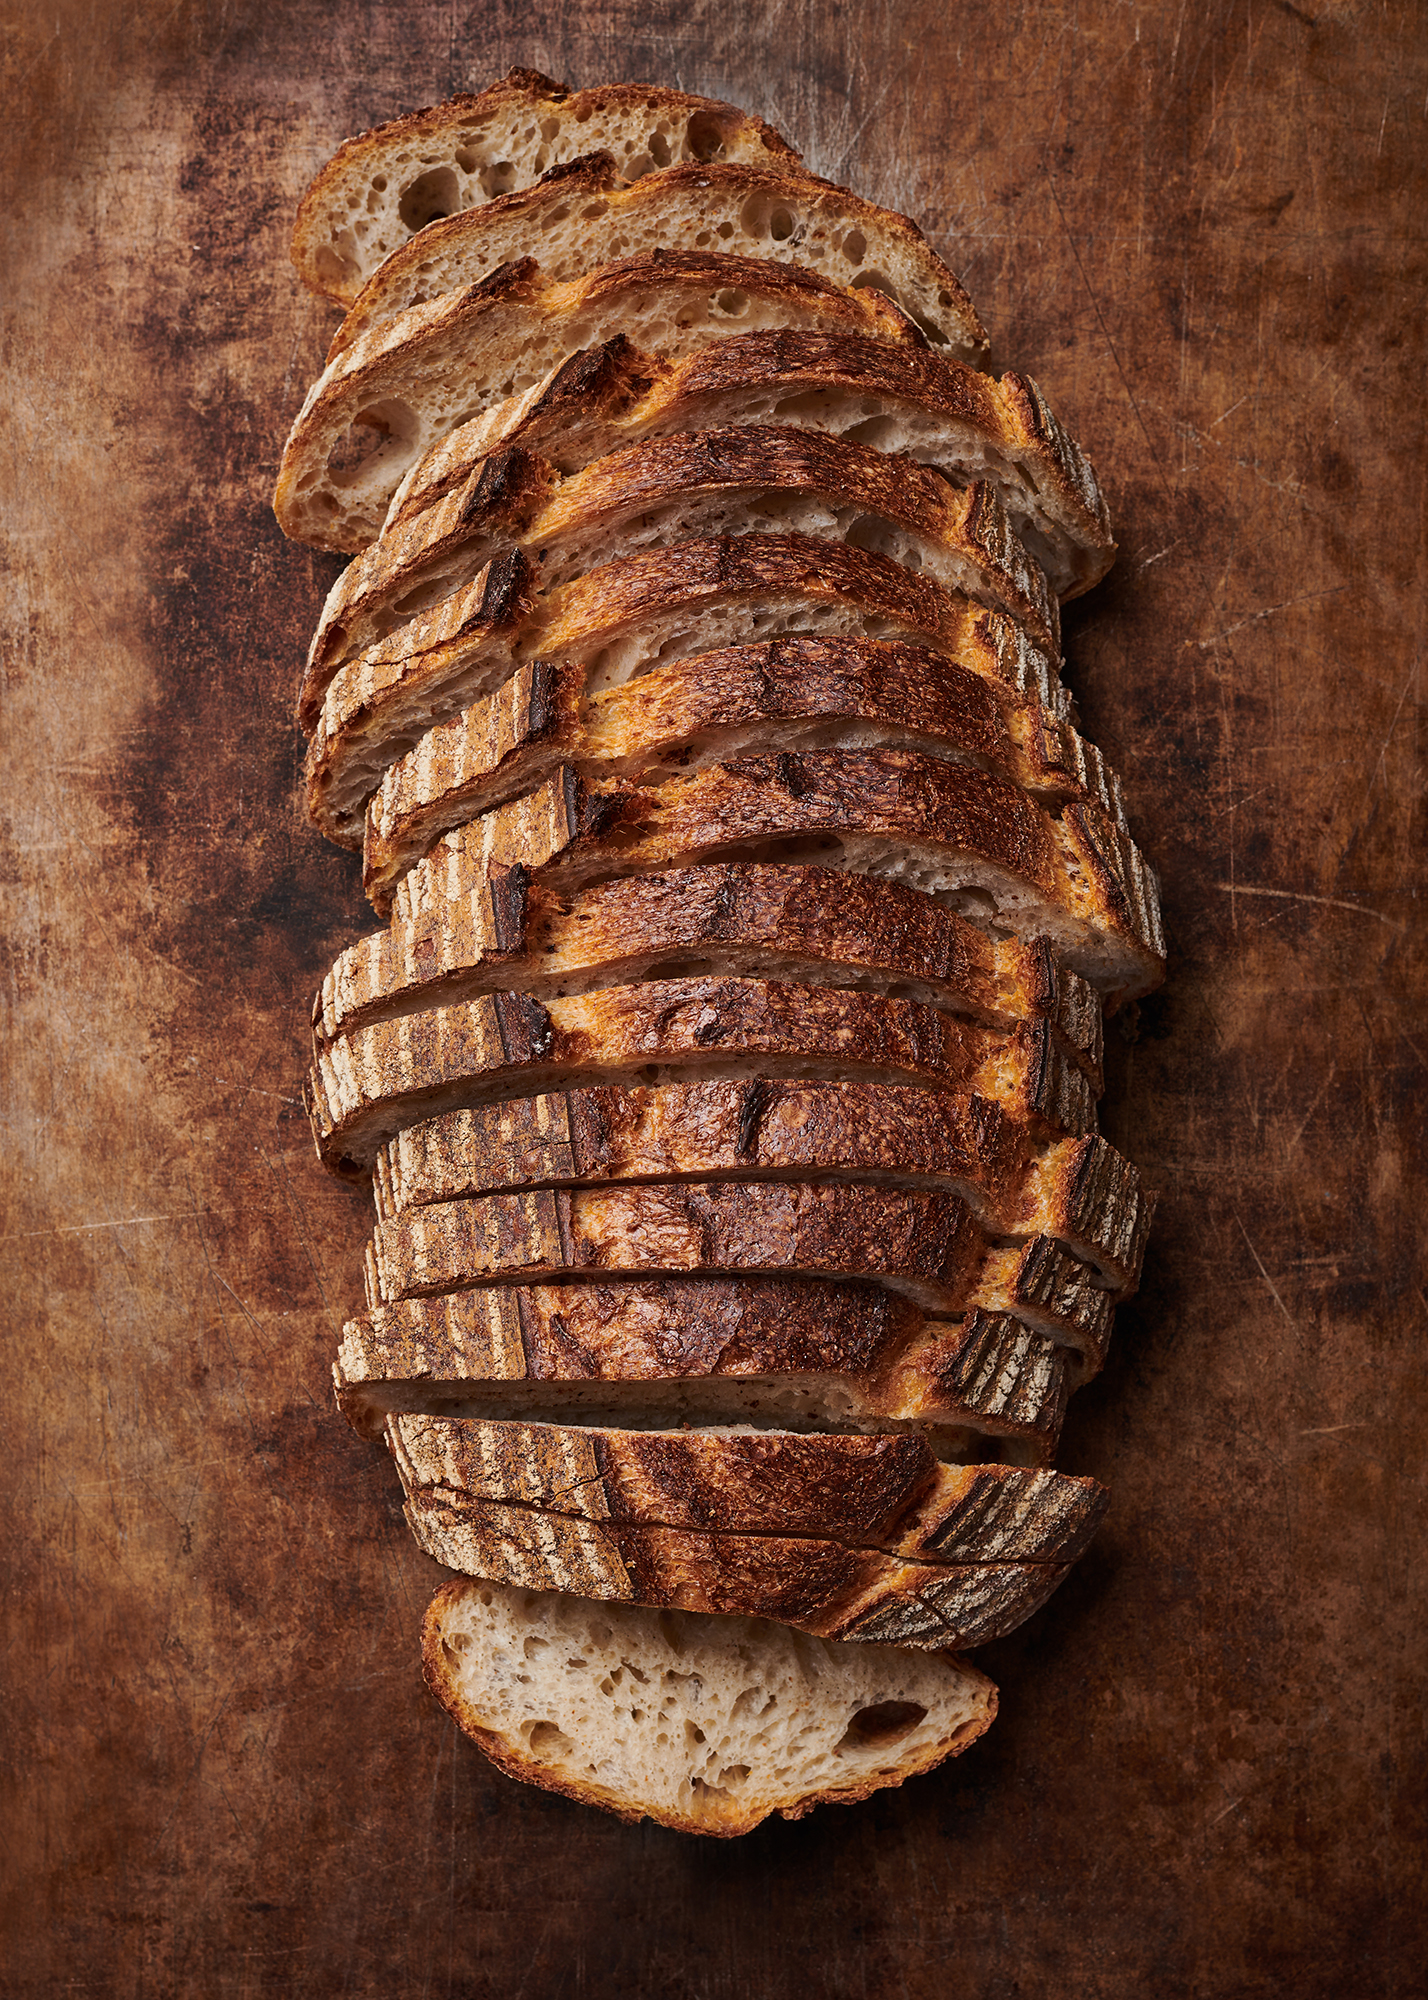 food photography of a rustic sourdough loaf